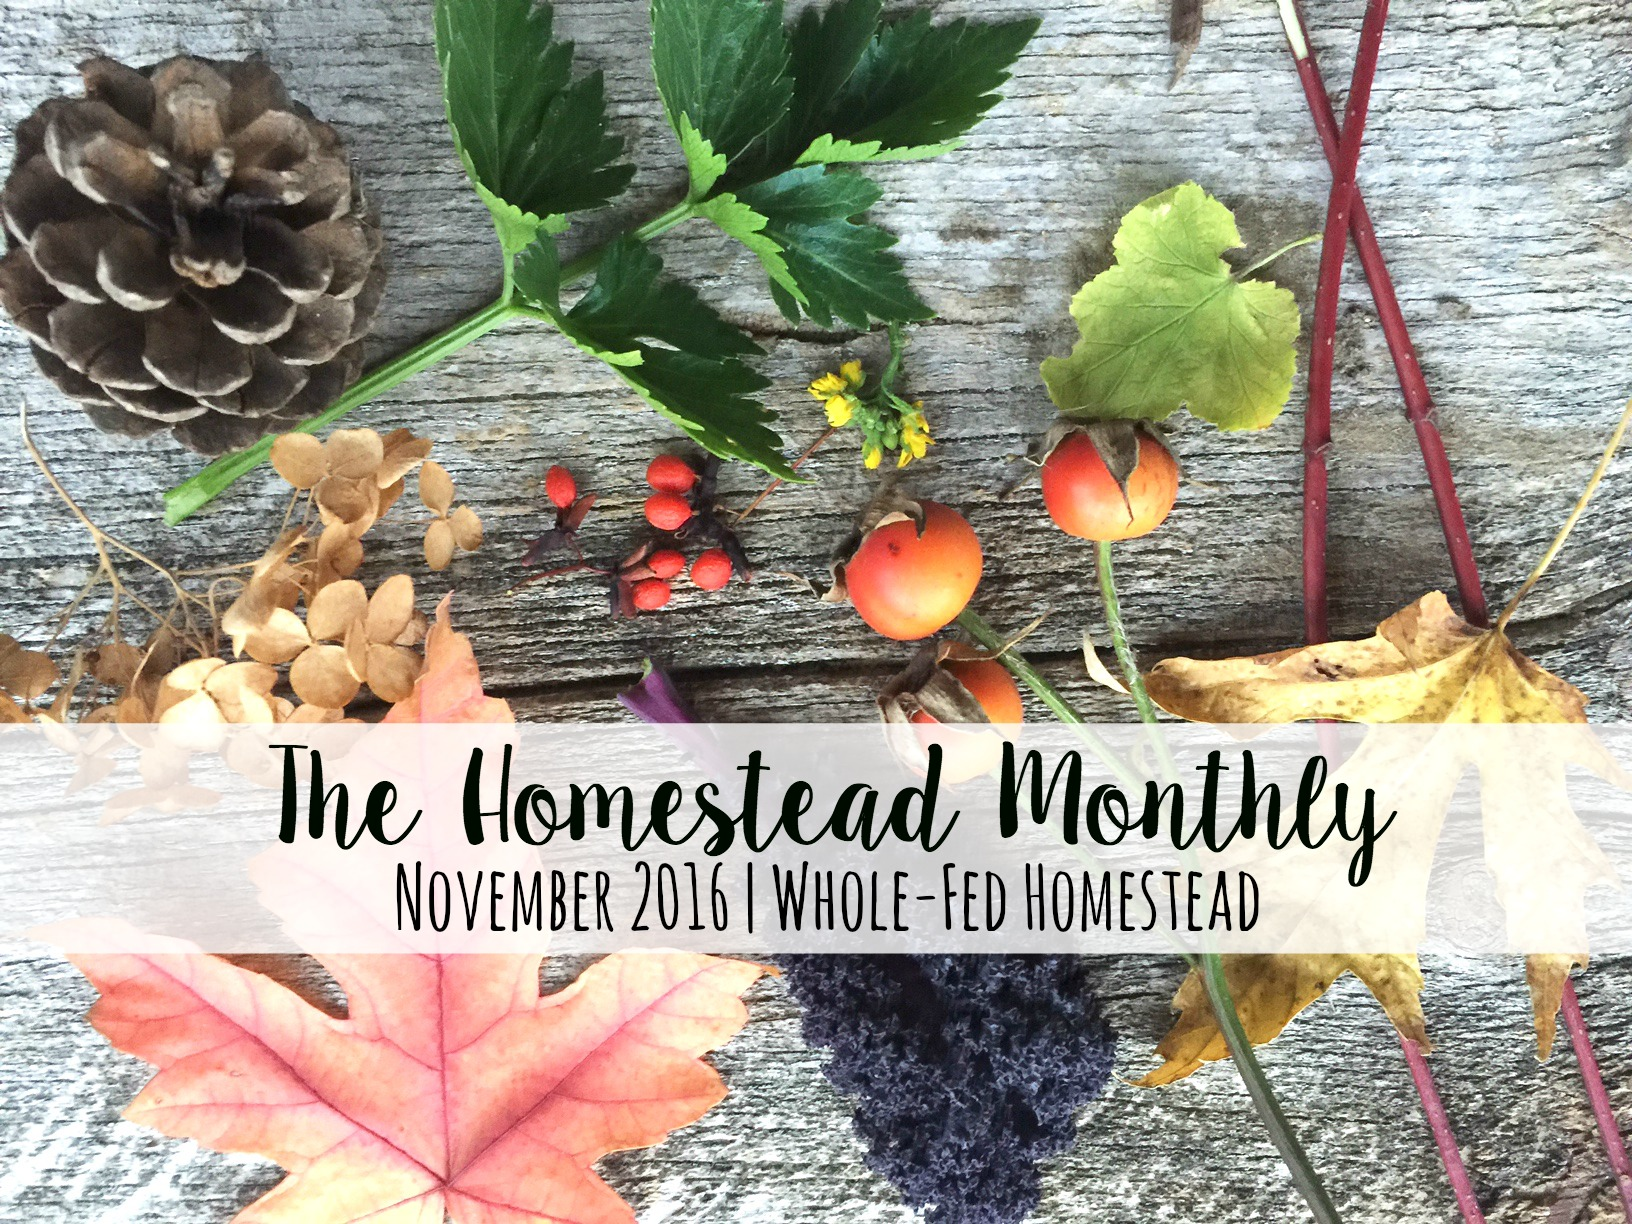 homestead-monthly-november-2016, Homestead Monthly: November {barn demolition, butchering, and winter preparations} | Whole-Fed Homestead